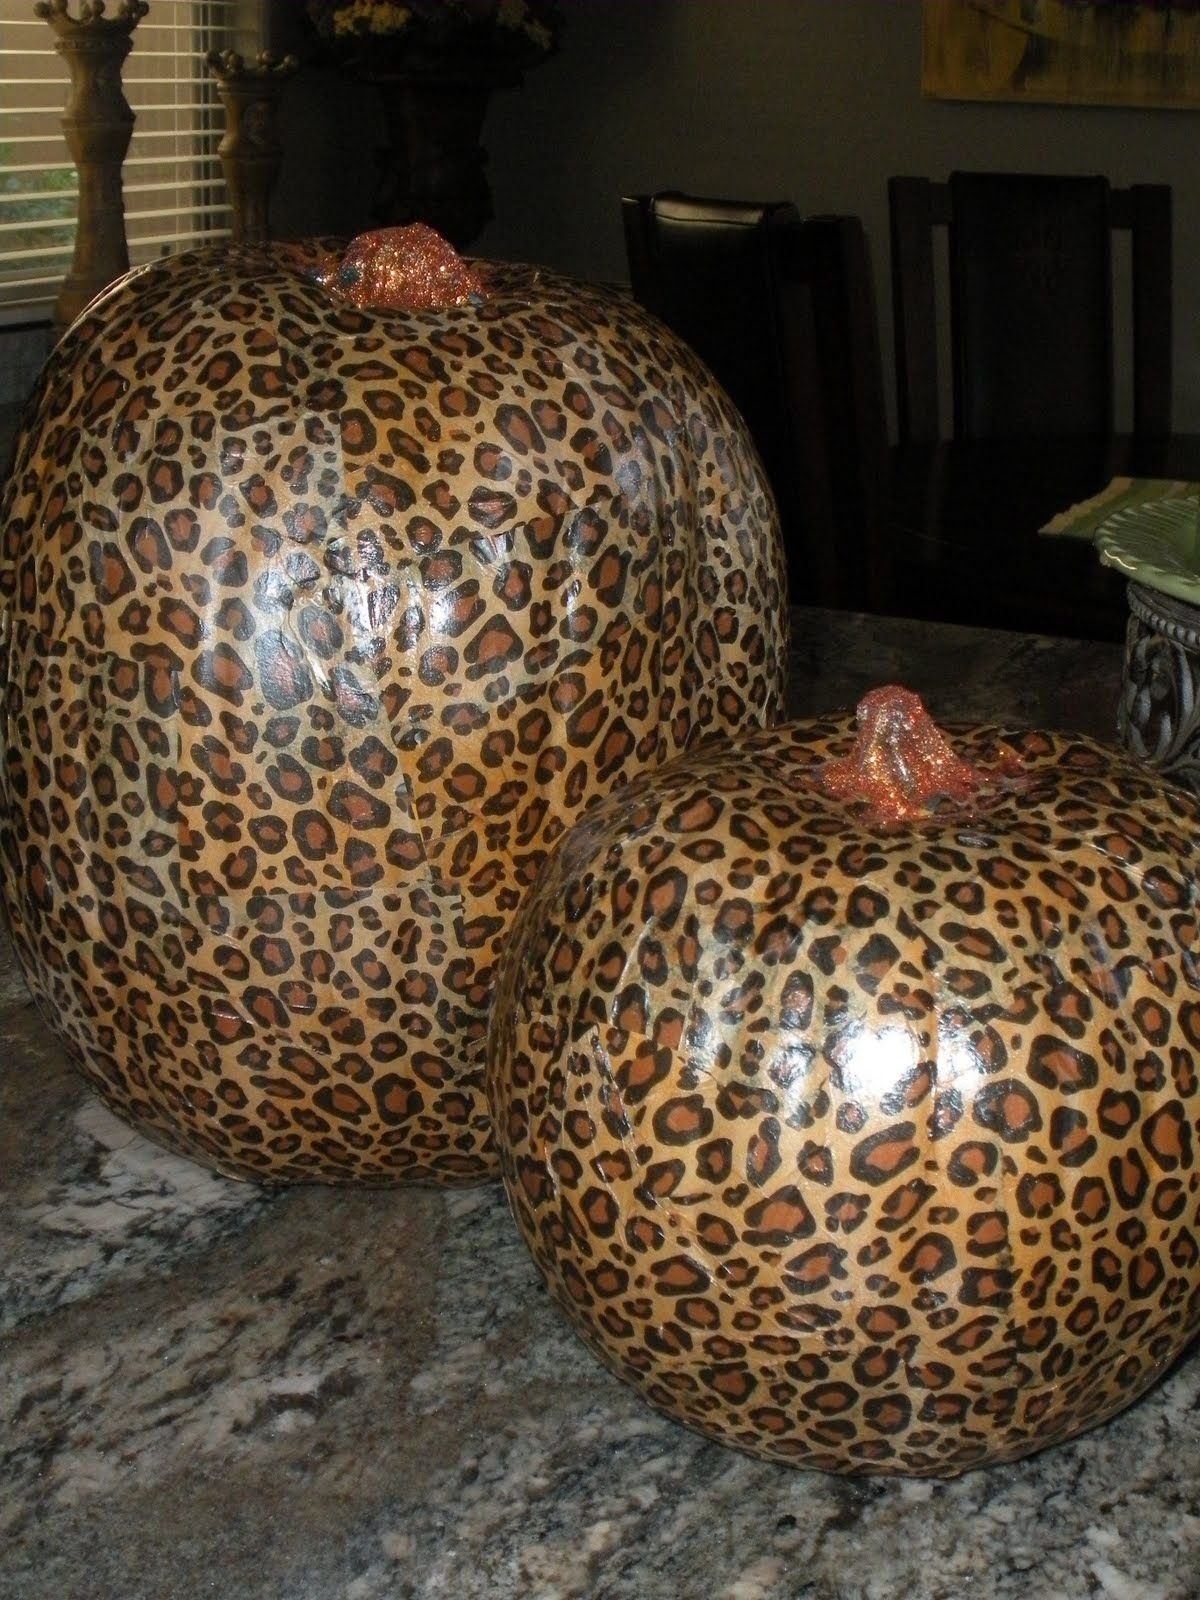 Not a fan of leopard print but I do love the idea of tissue paper mod podge pumkins, although I don't think this would work for pumpkins outdoors